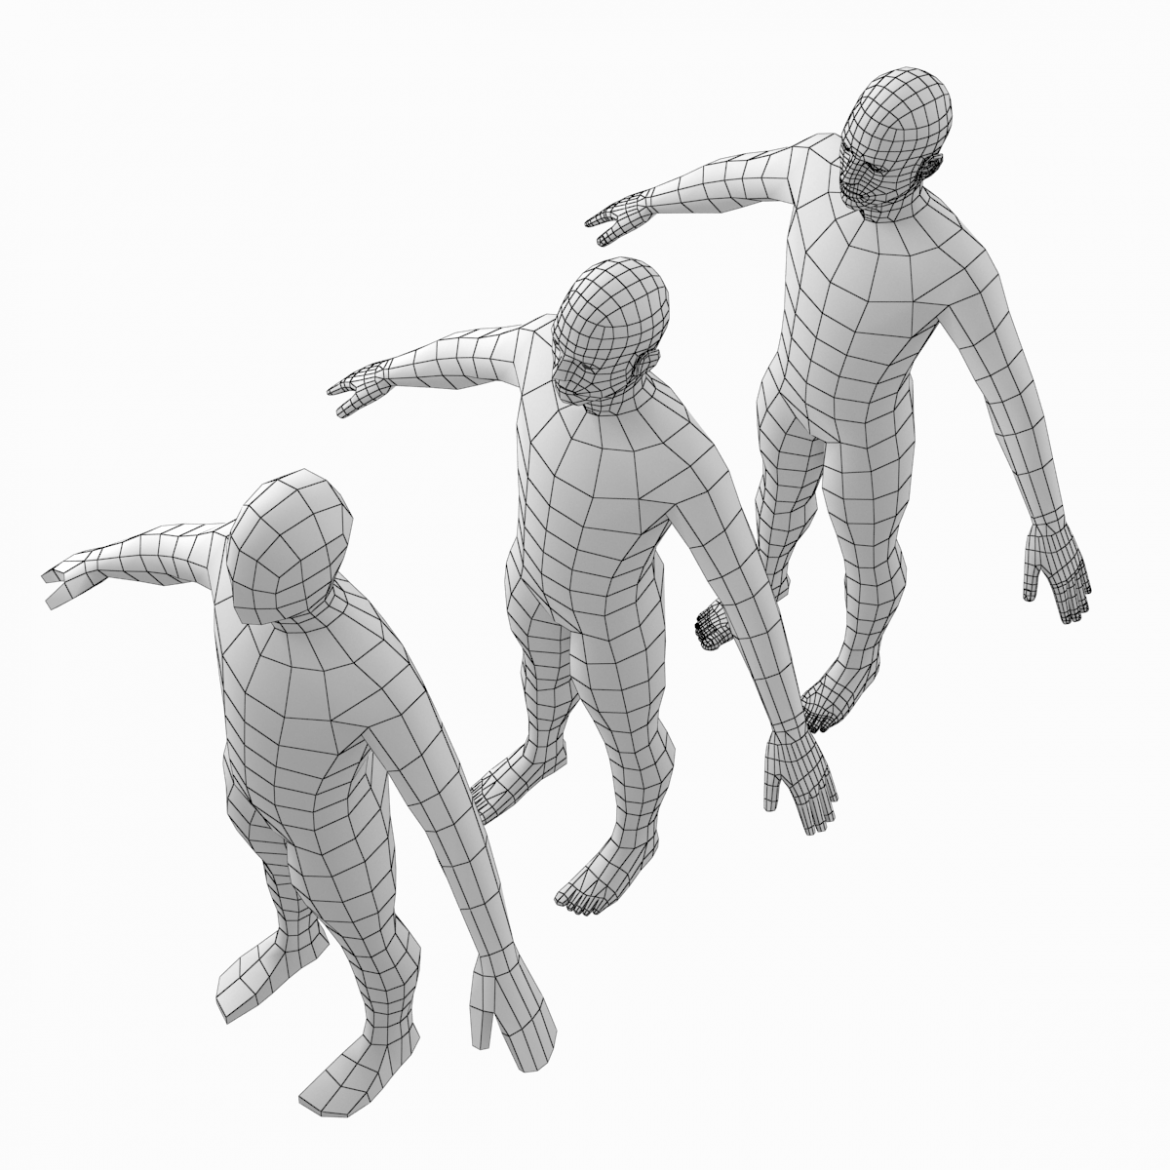 female and male base mesh in a pose bundle 3d model 3ds max dxf dwg fbx c4d dae ma mb  obj 301867